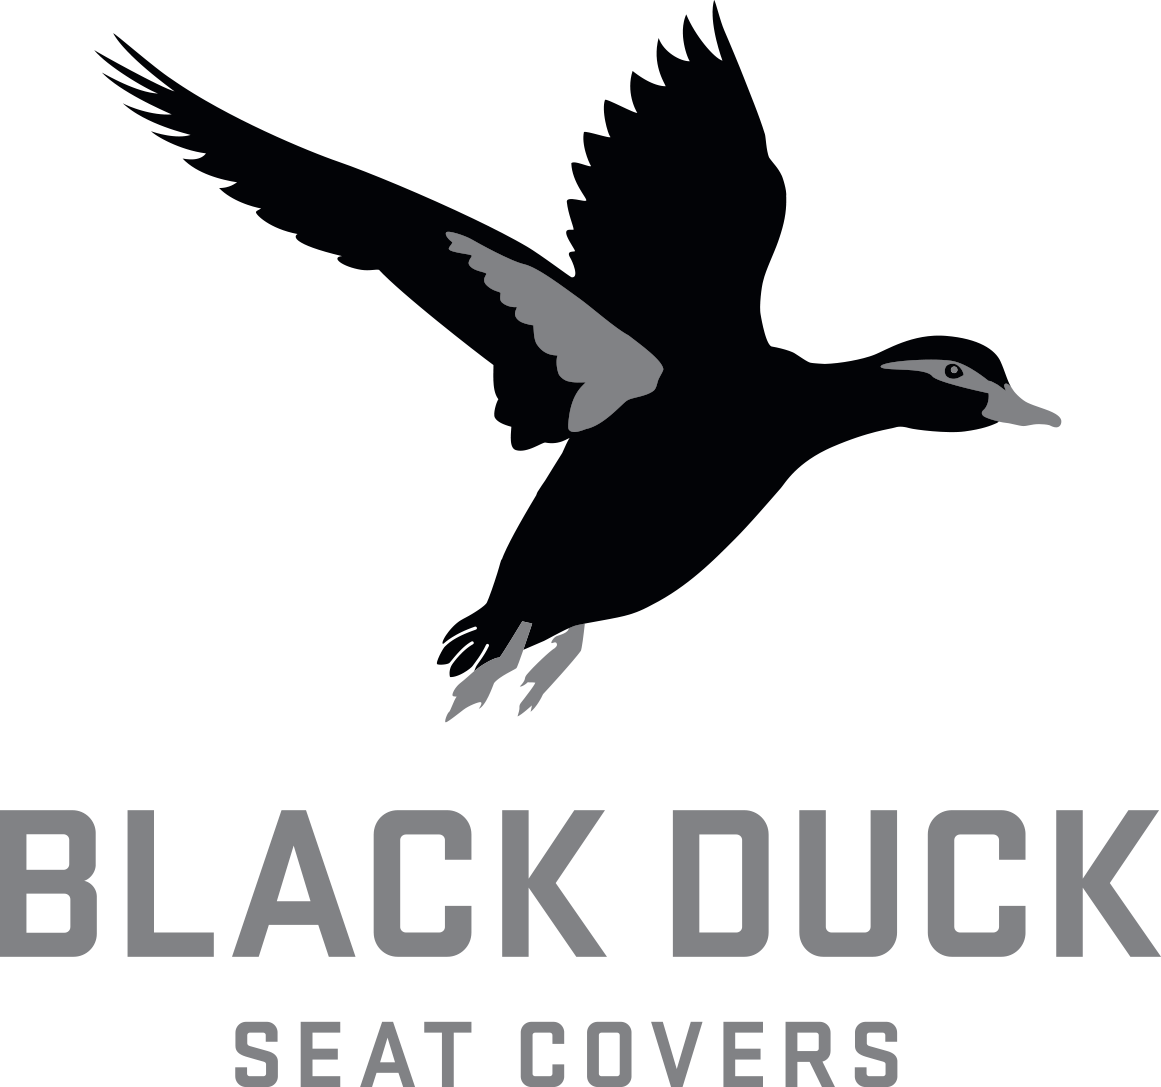 Black Duck Seat Covers to fit VW Transporter T^ from 11/2015 onwards.